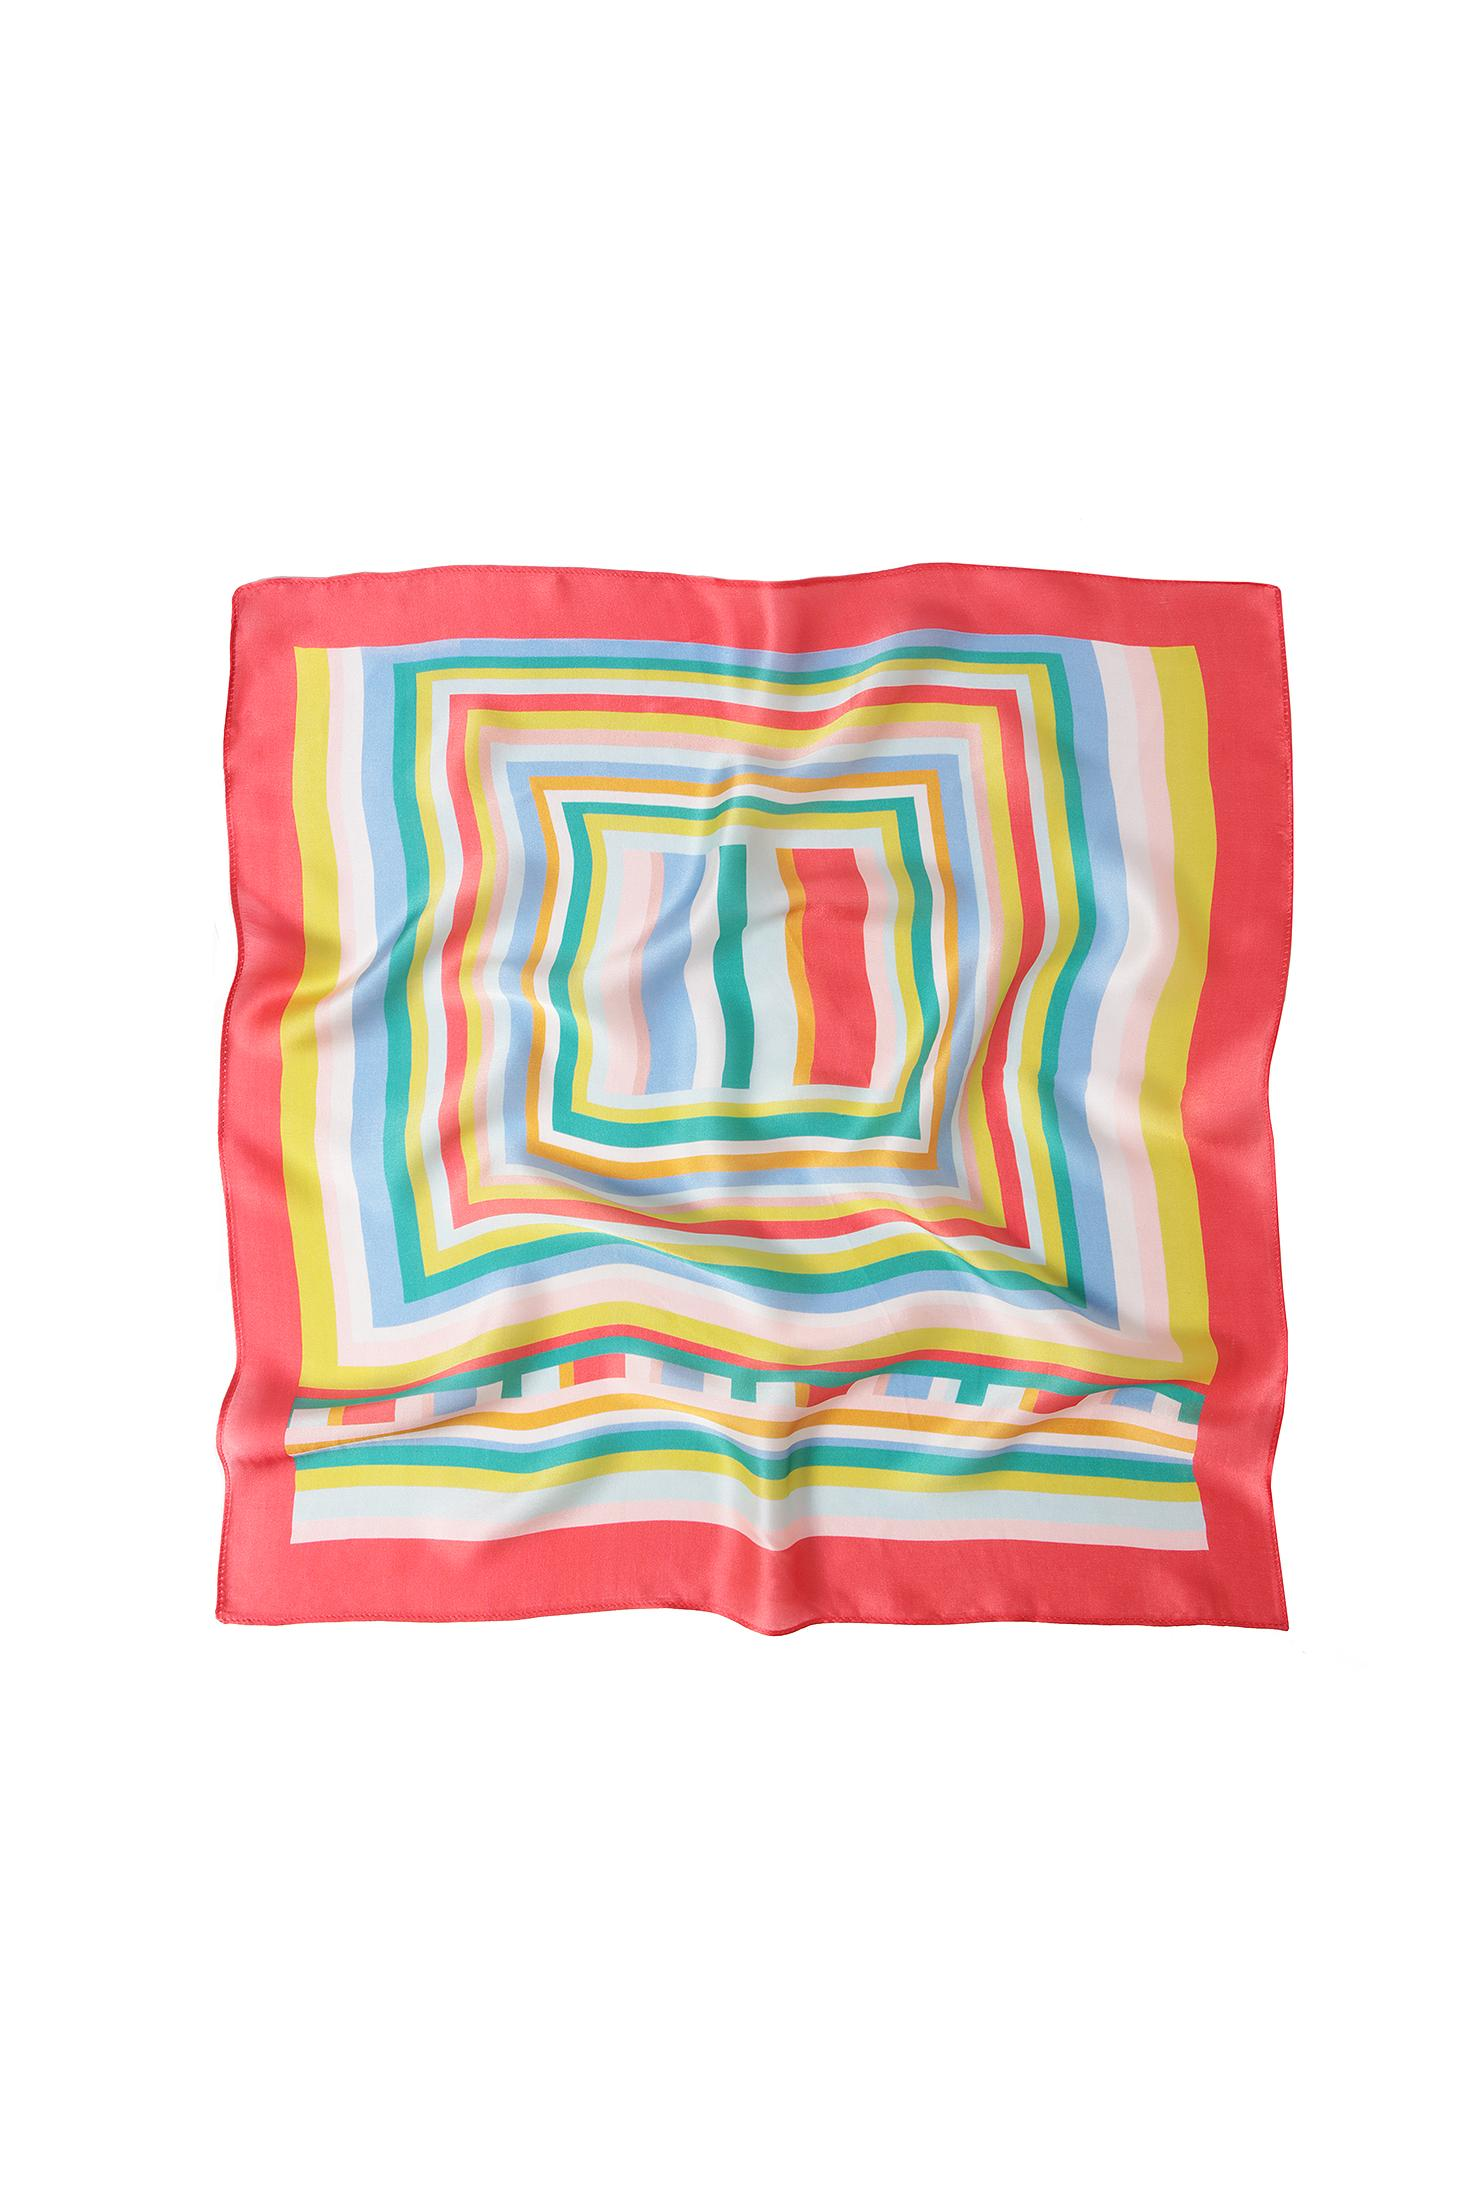 LADIES' SILK SCARF ROKONI